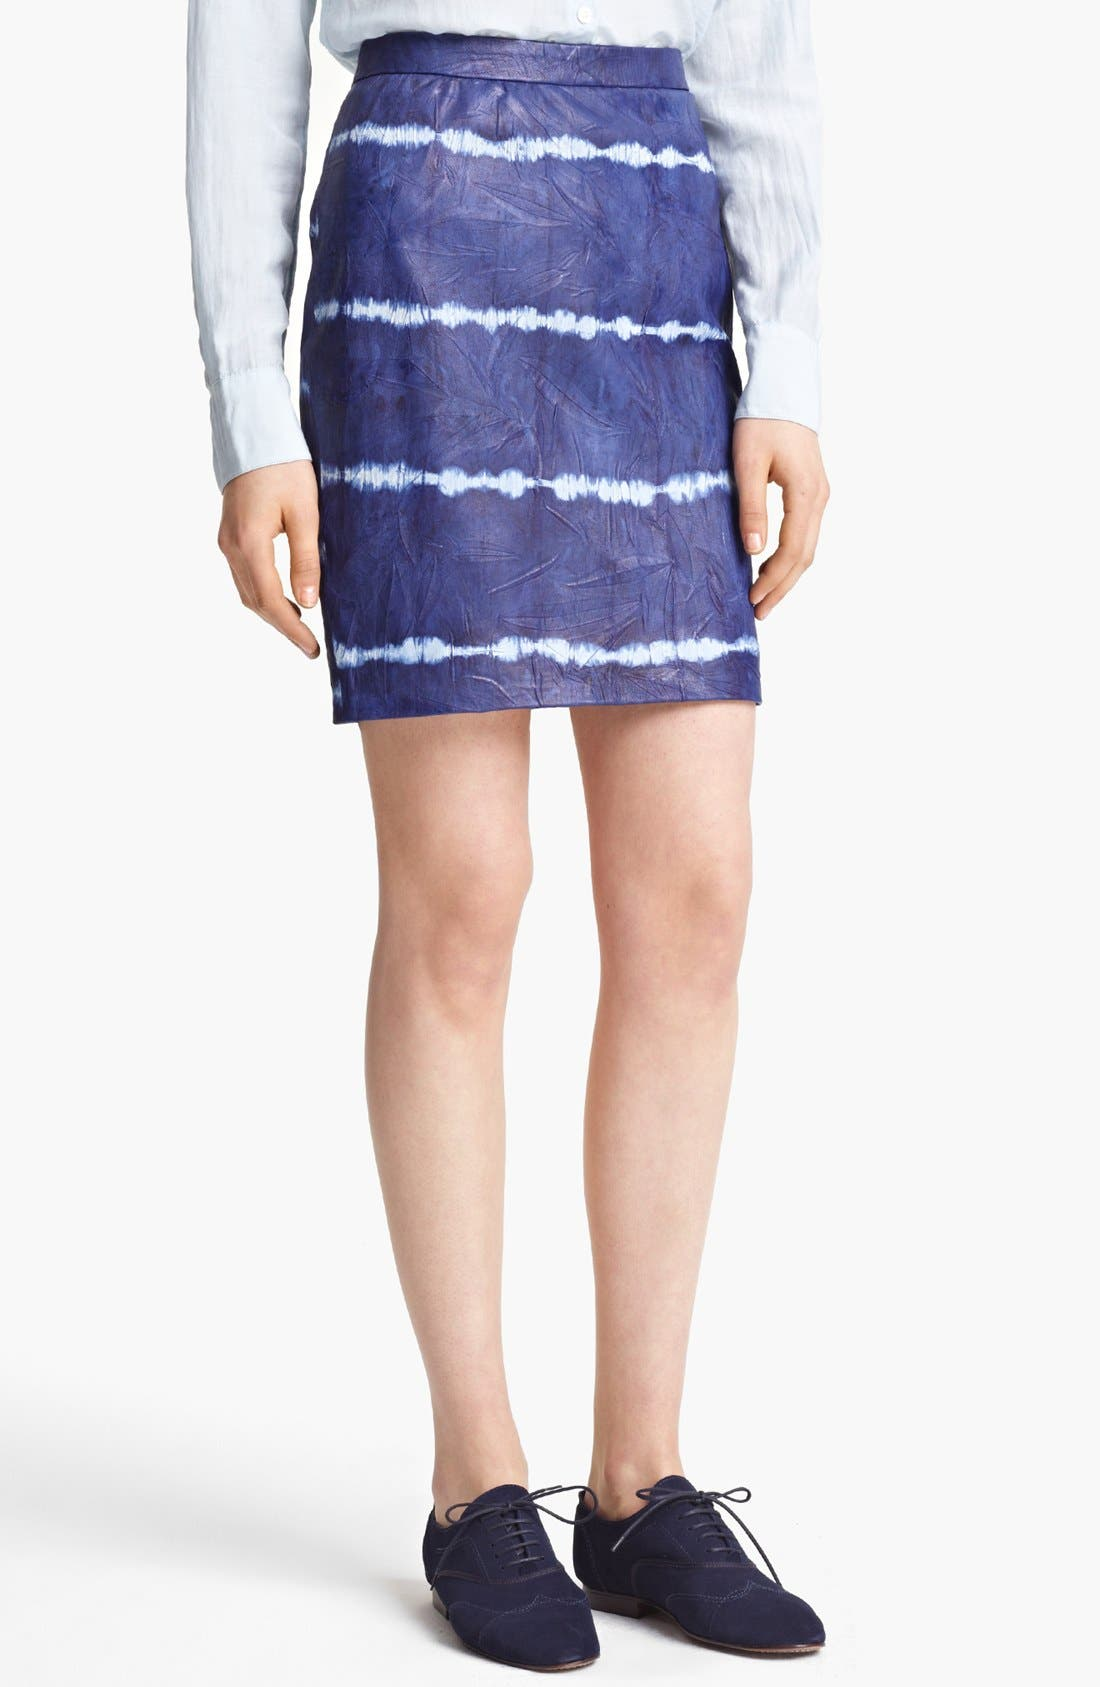 Alternate Image 1 Selected - Band of Outsiders Tie Dye Leather Skirt